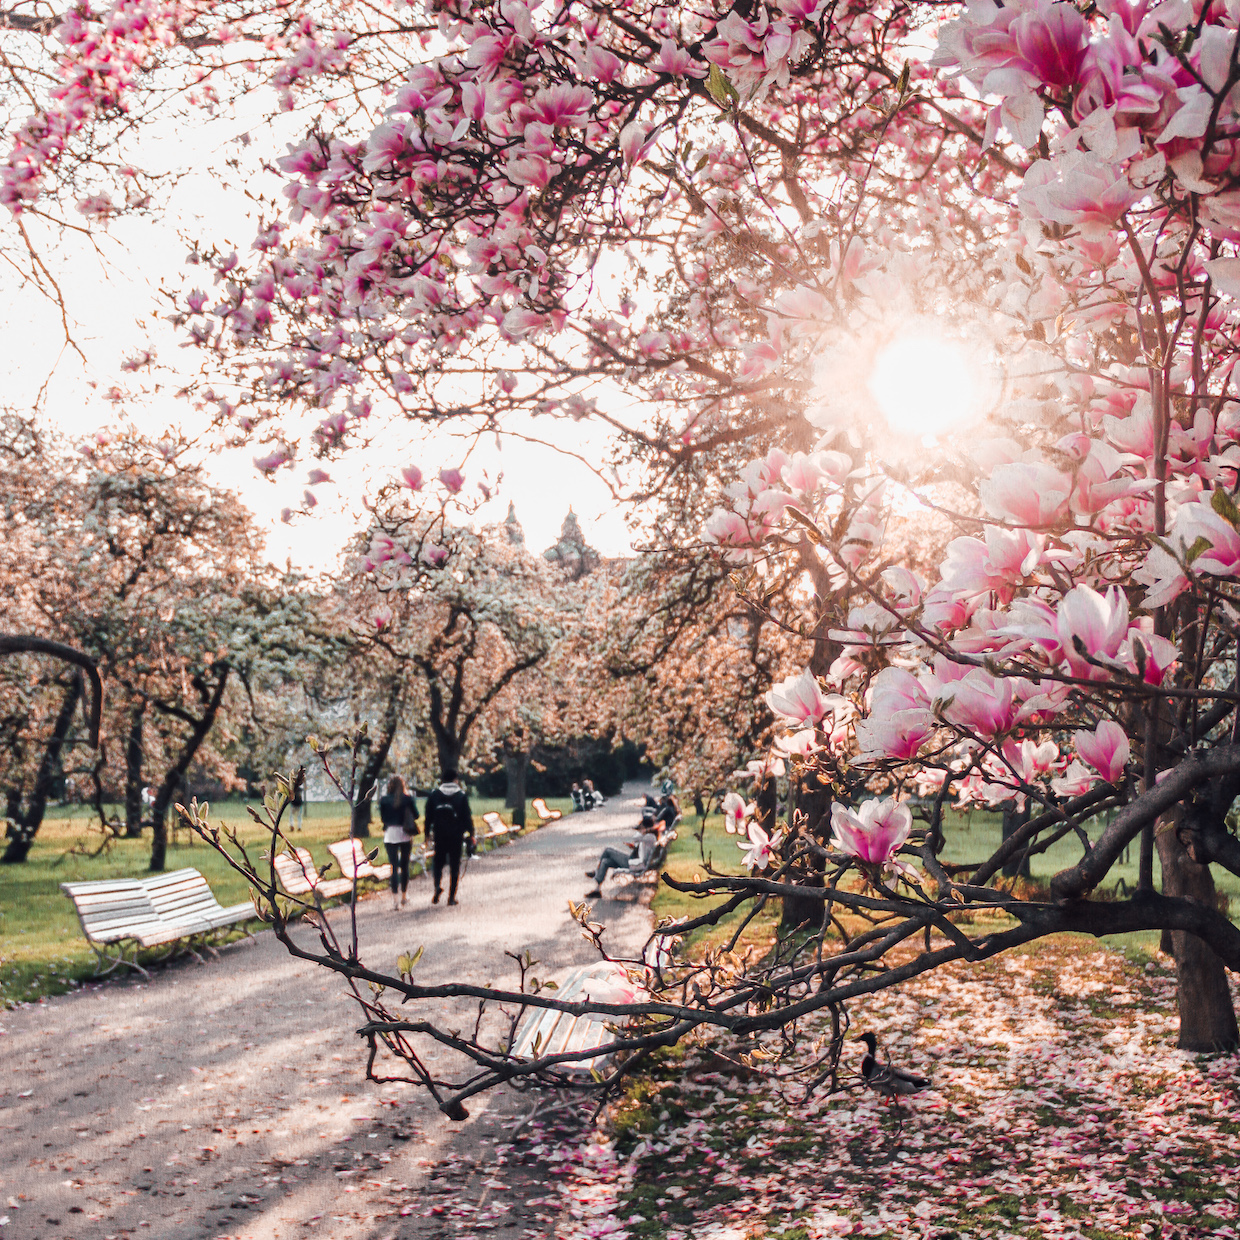 Where to view cherry blossoms in Europe